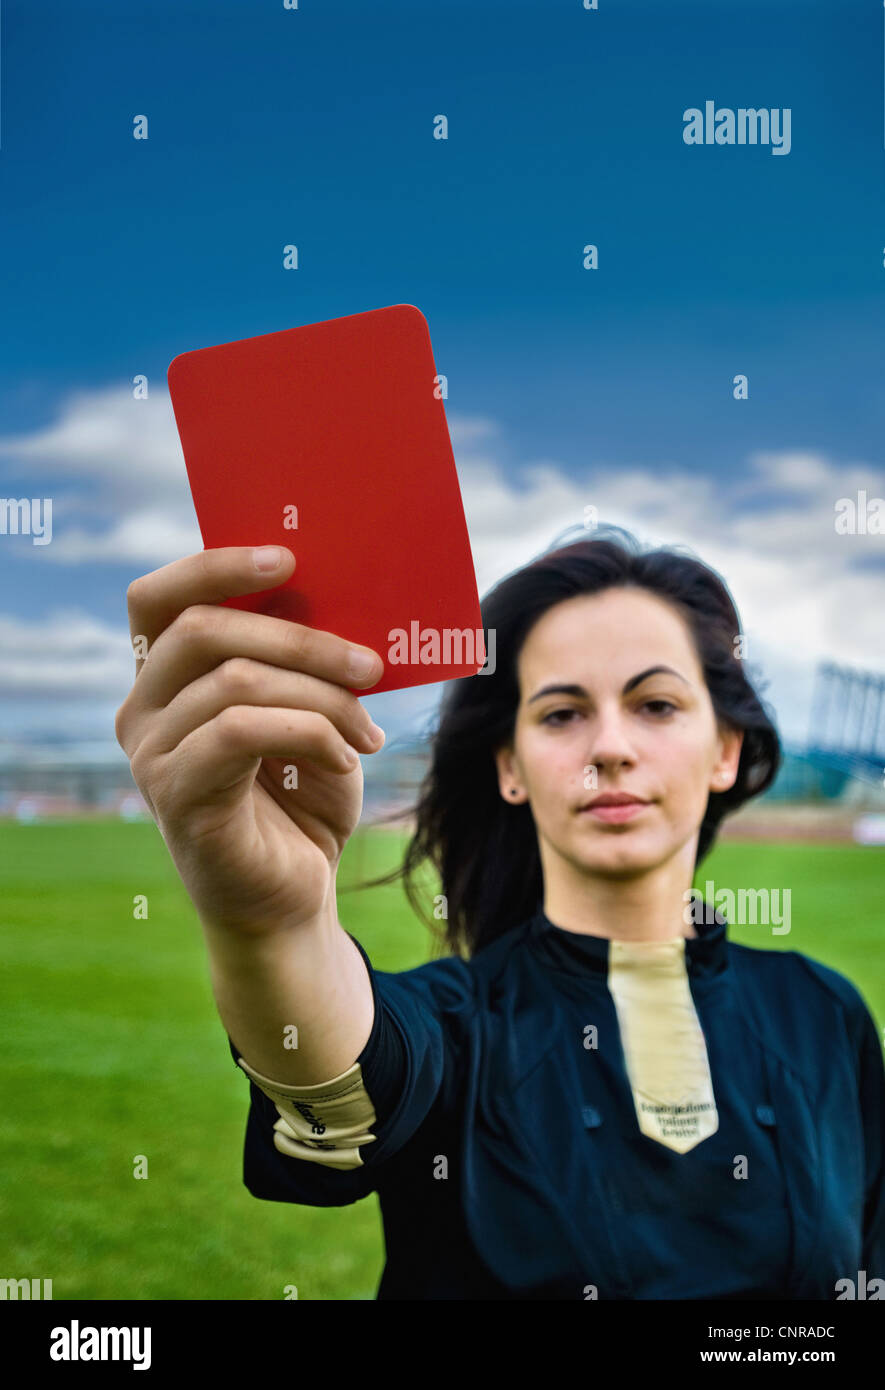 Woman holding red card on soccer pitch - Stock Image